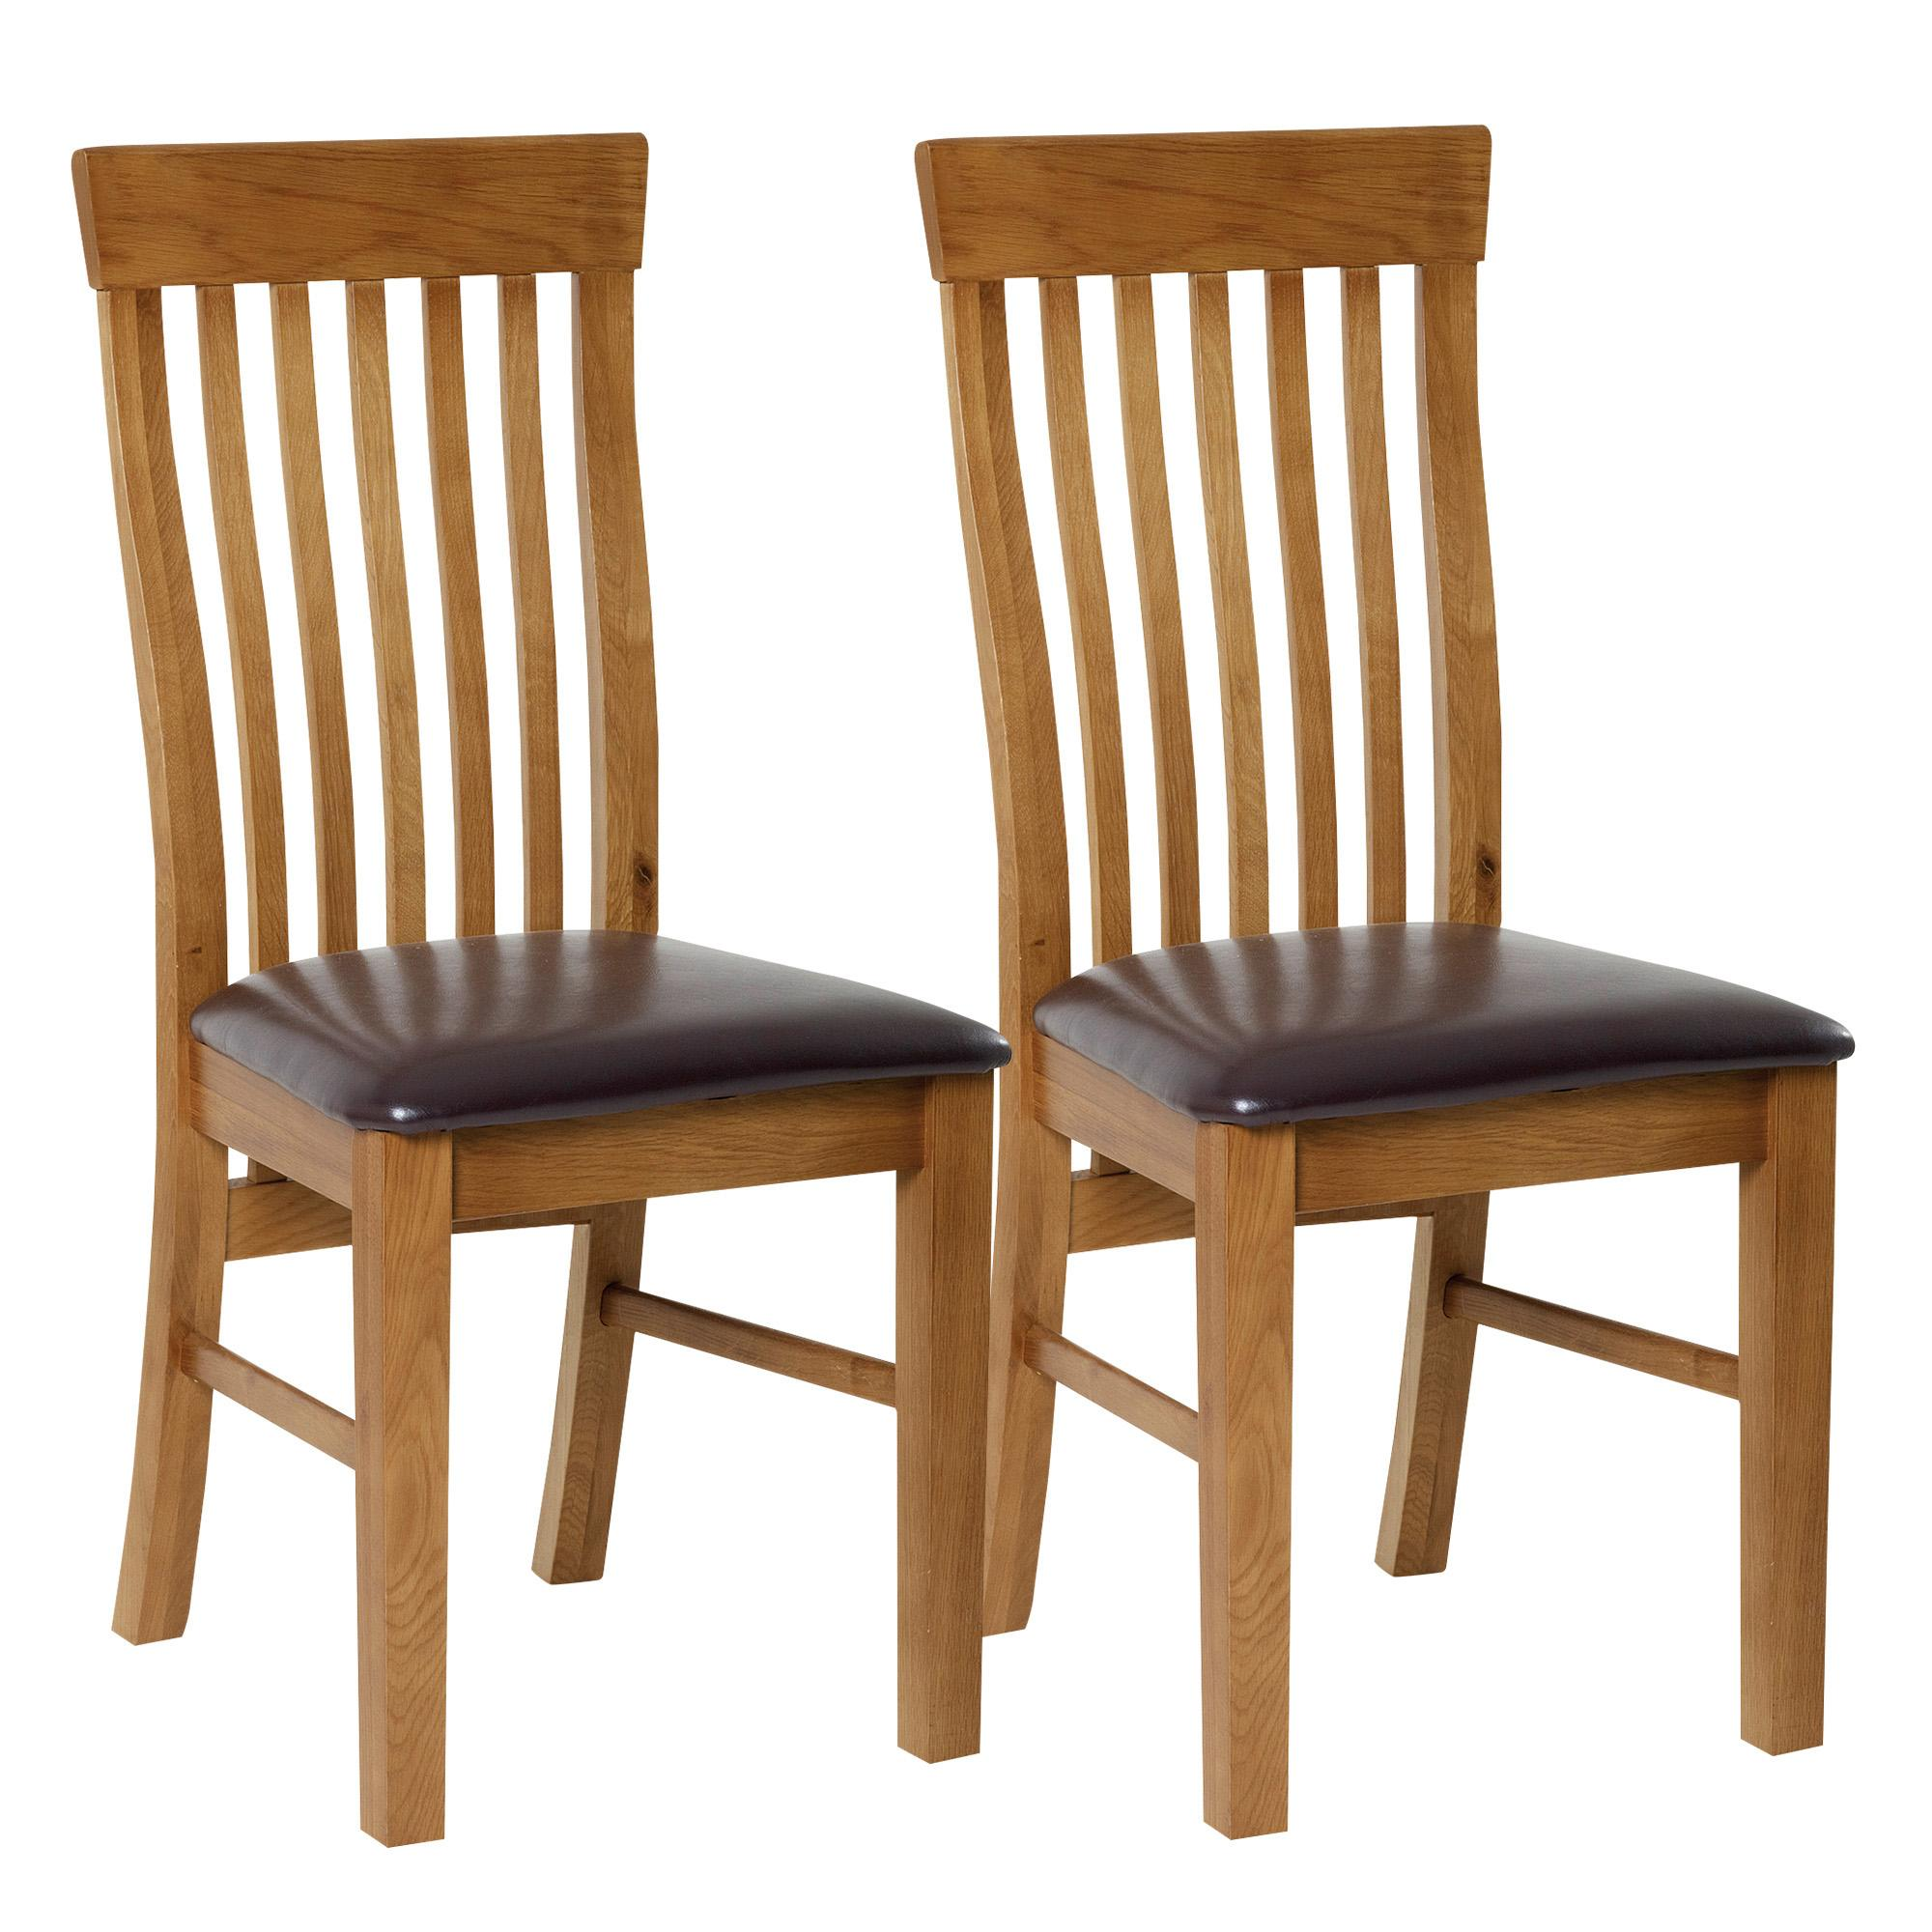 dorchester oak pair of dining chairs VGIQAPO